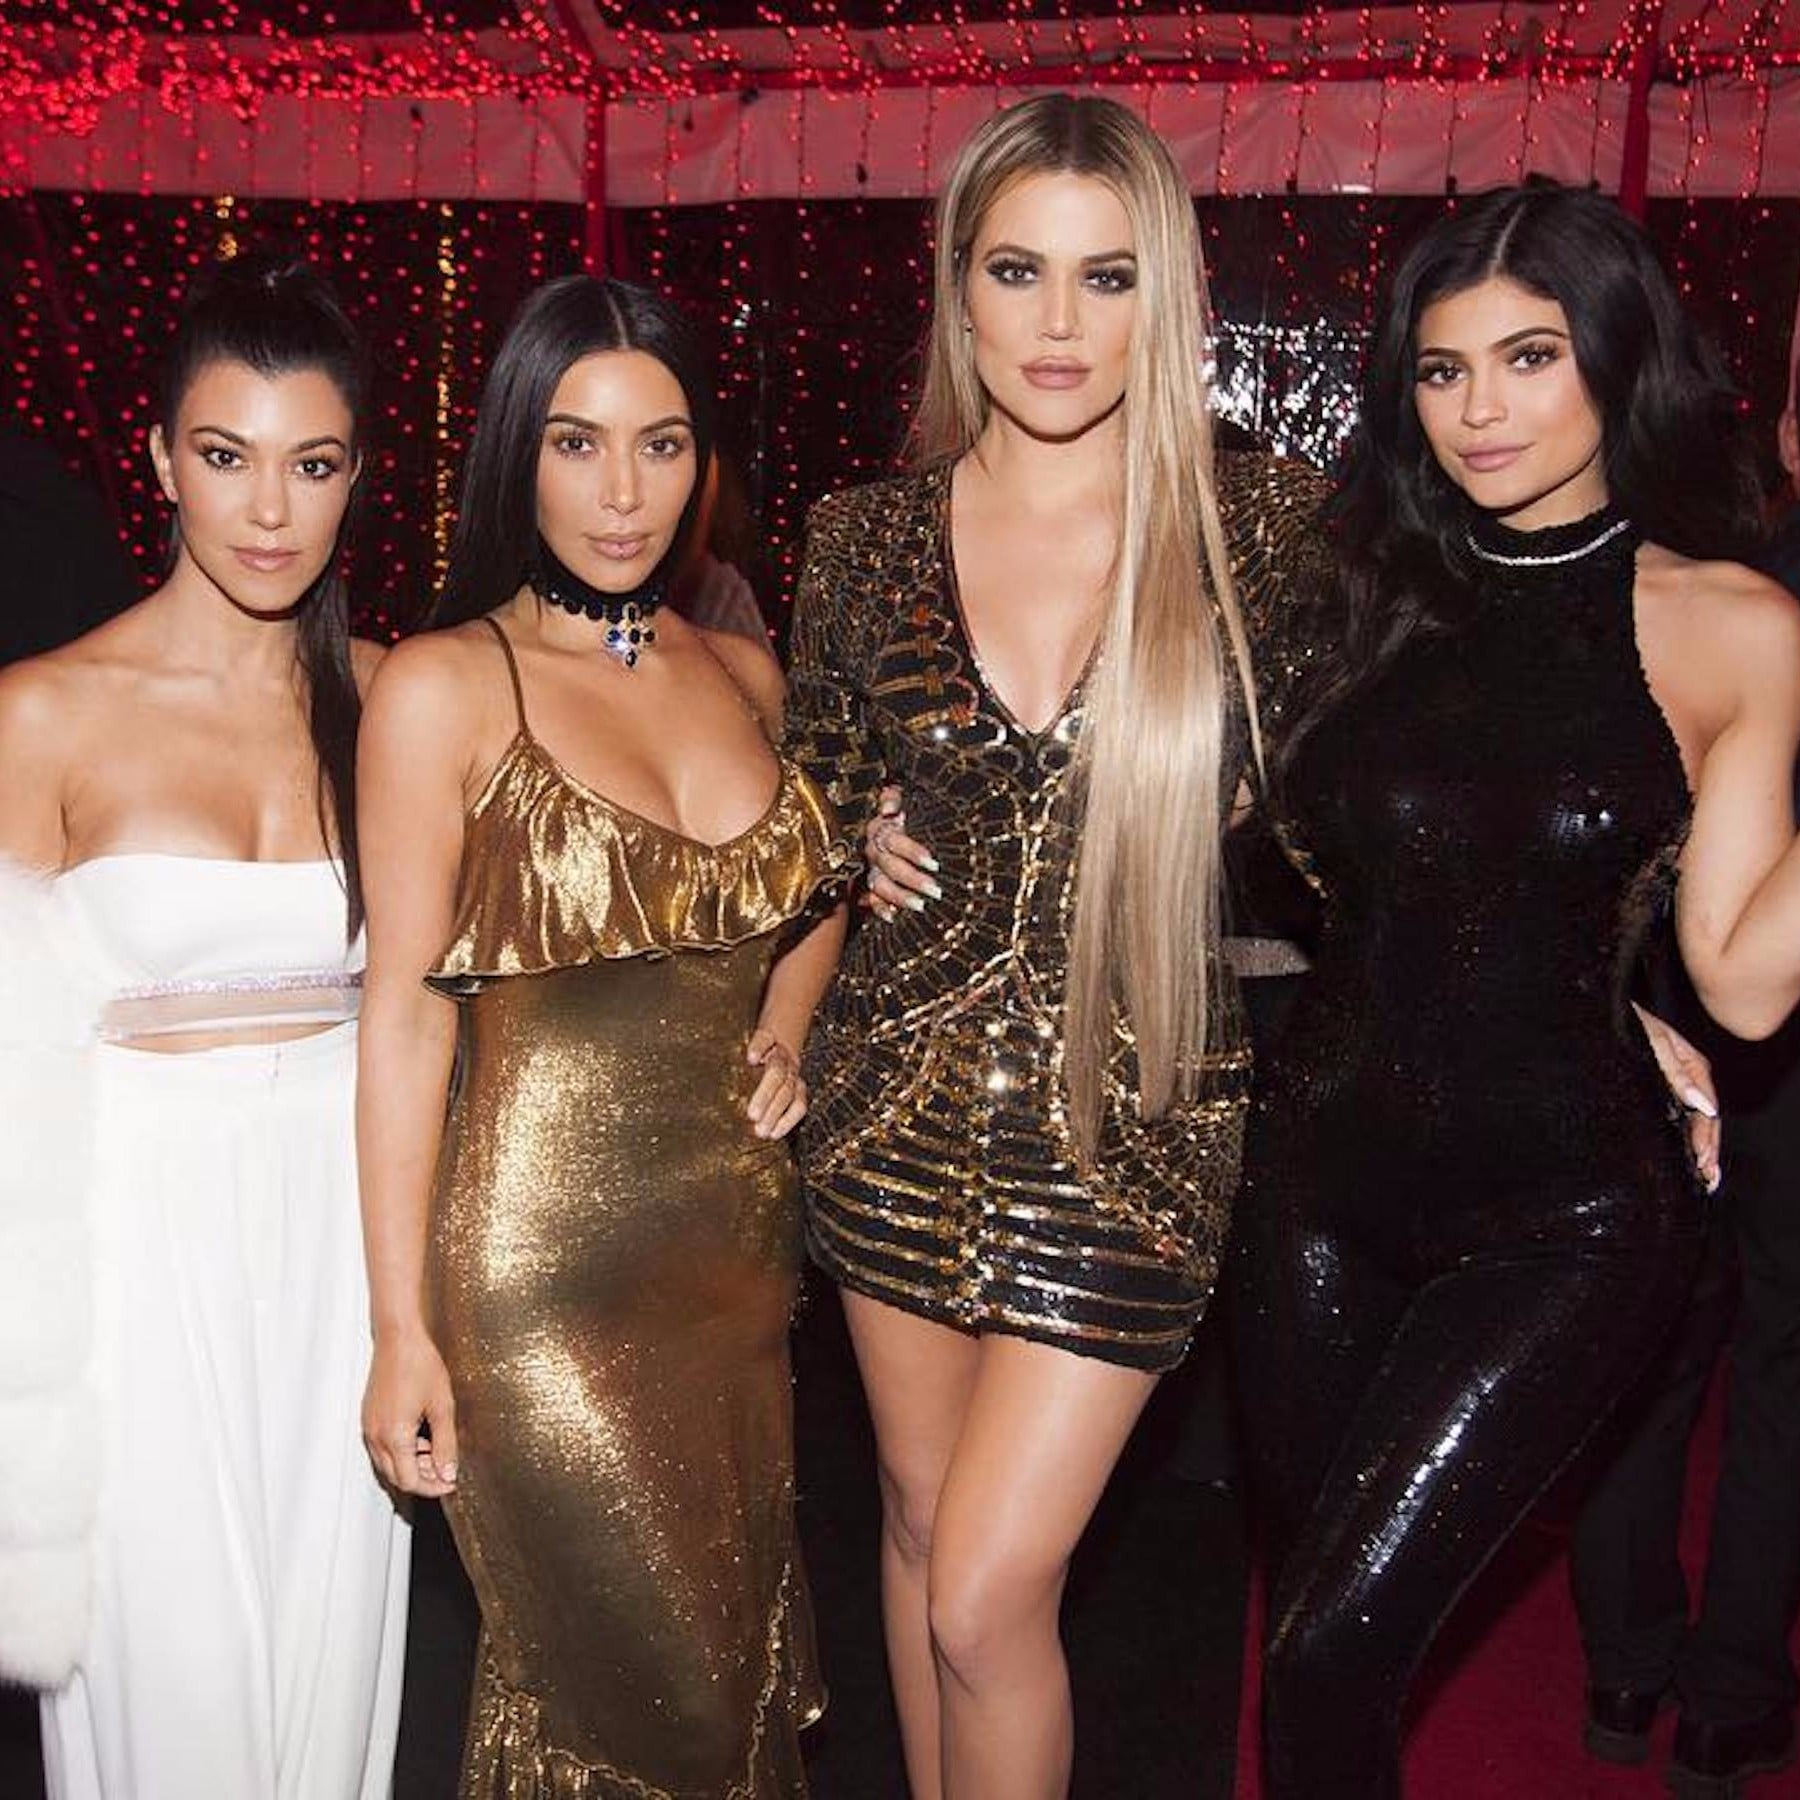 Family Christmas Picture Kardashian Family Christmas Pictures Popsugar Celebrity